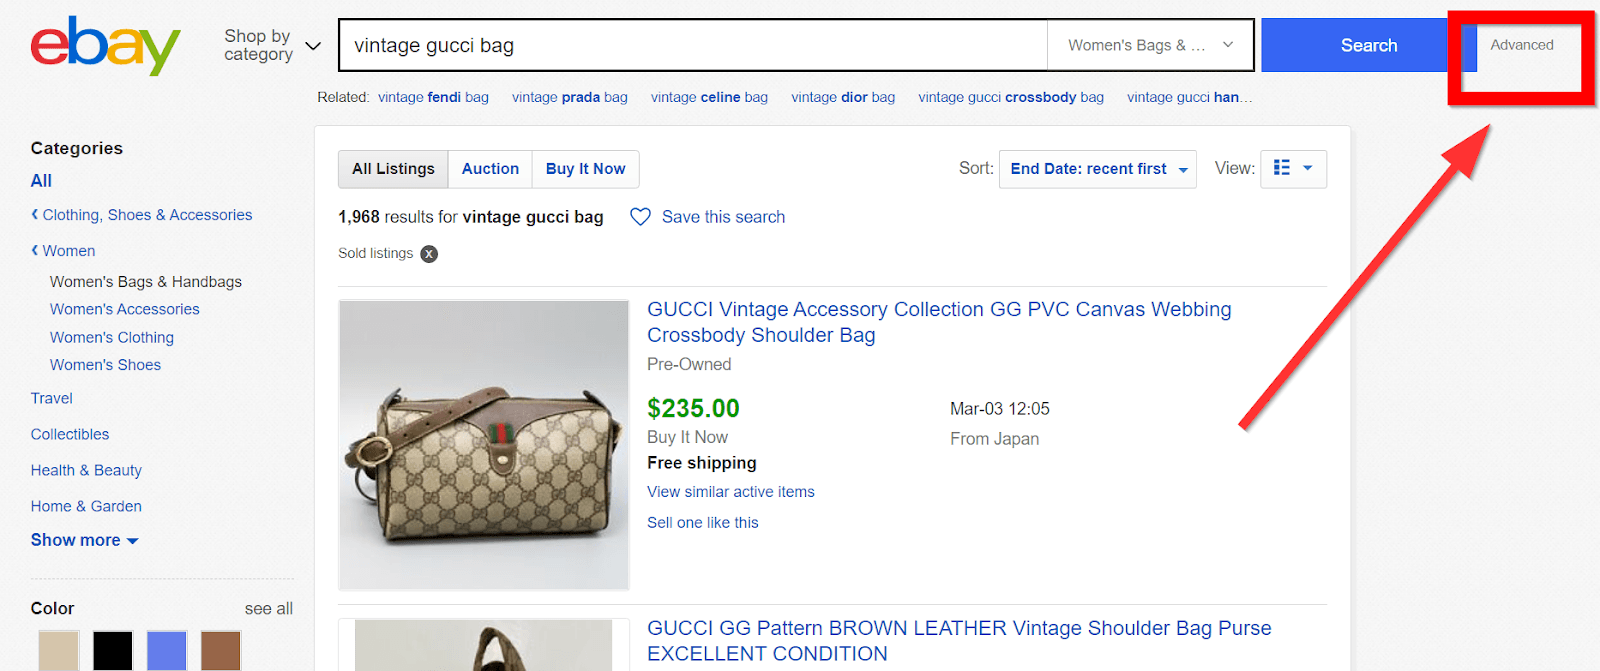 How To Sell Your Inherited Valuables - eBay listing